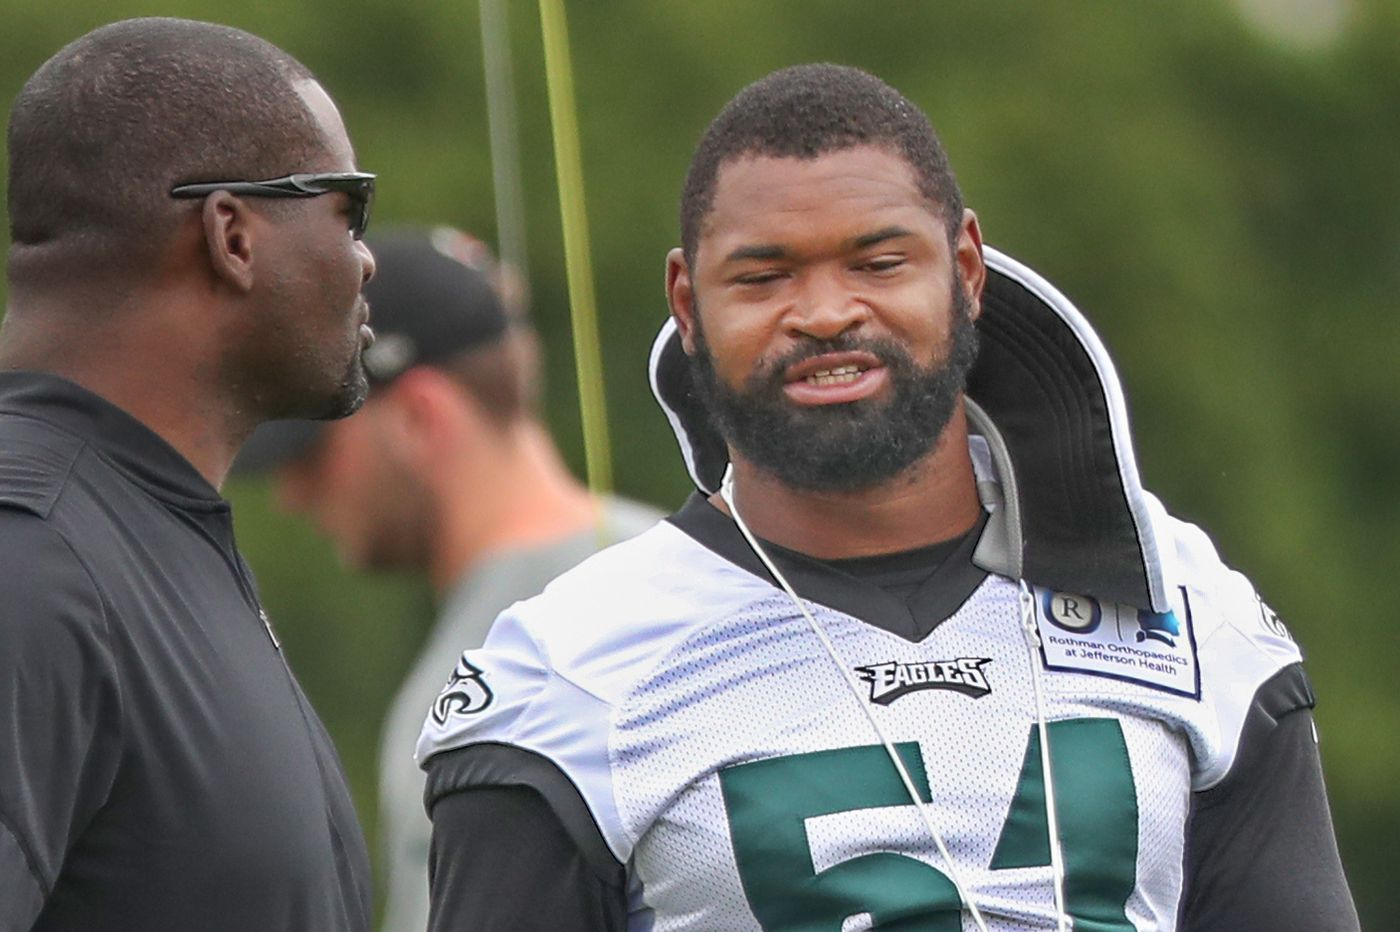 Doug Pederson says Eagles didn't cut Zach Brown just to shake things up | Bob Ford